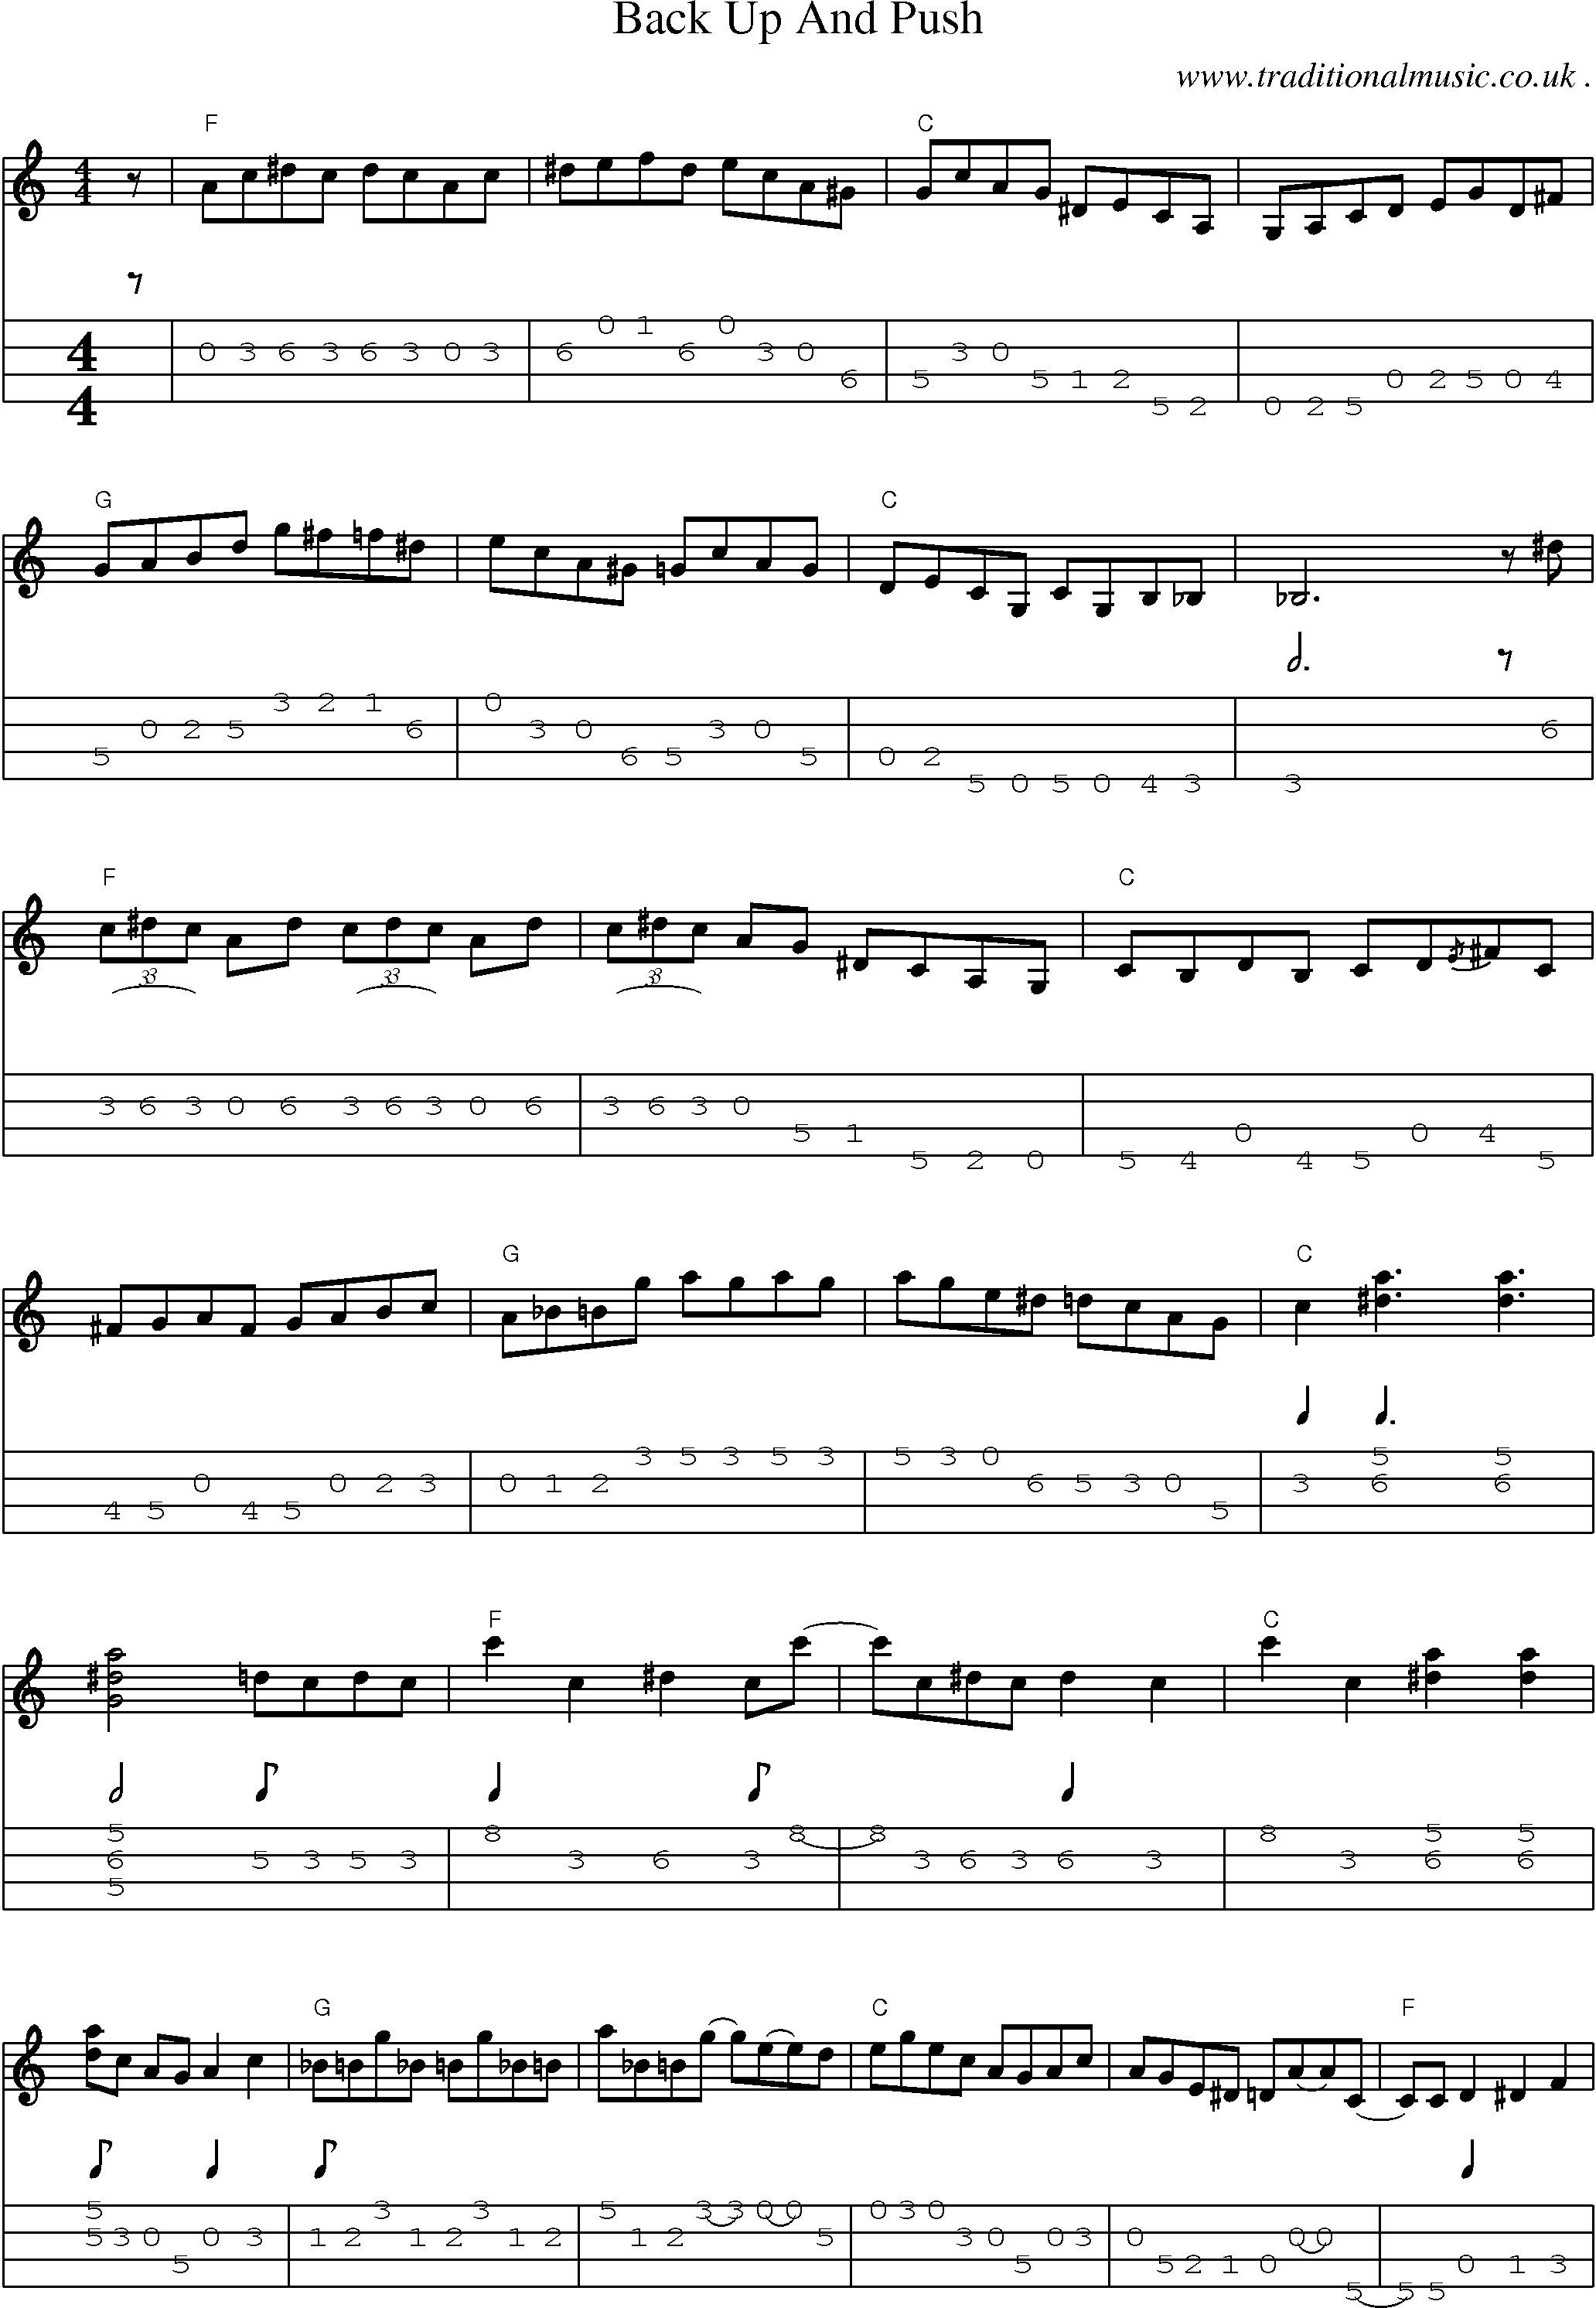 Music Score And Mandolin Tabs For Back Up And Push Sheetmusic